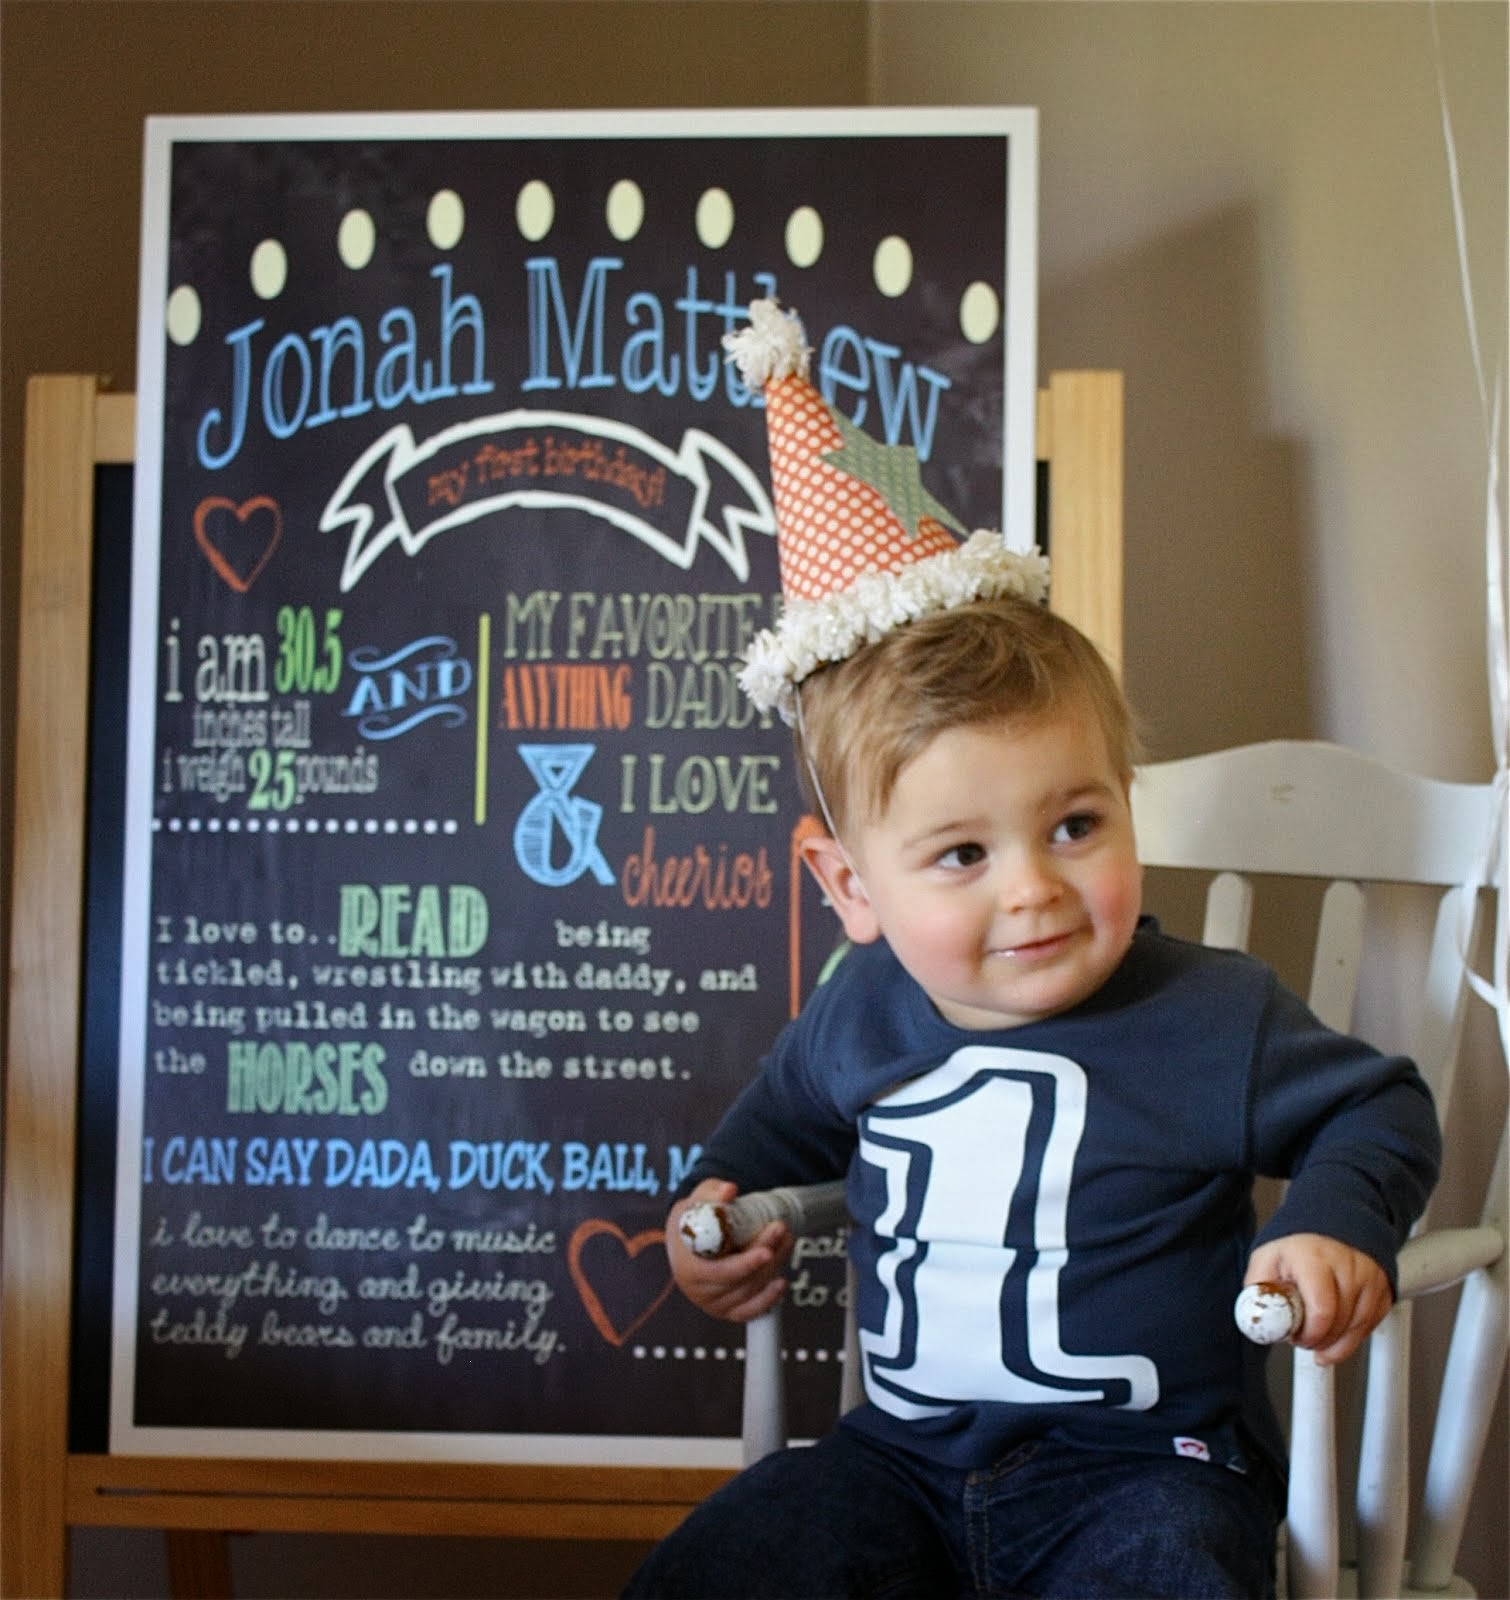 Jonah, Our little bossman